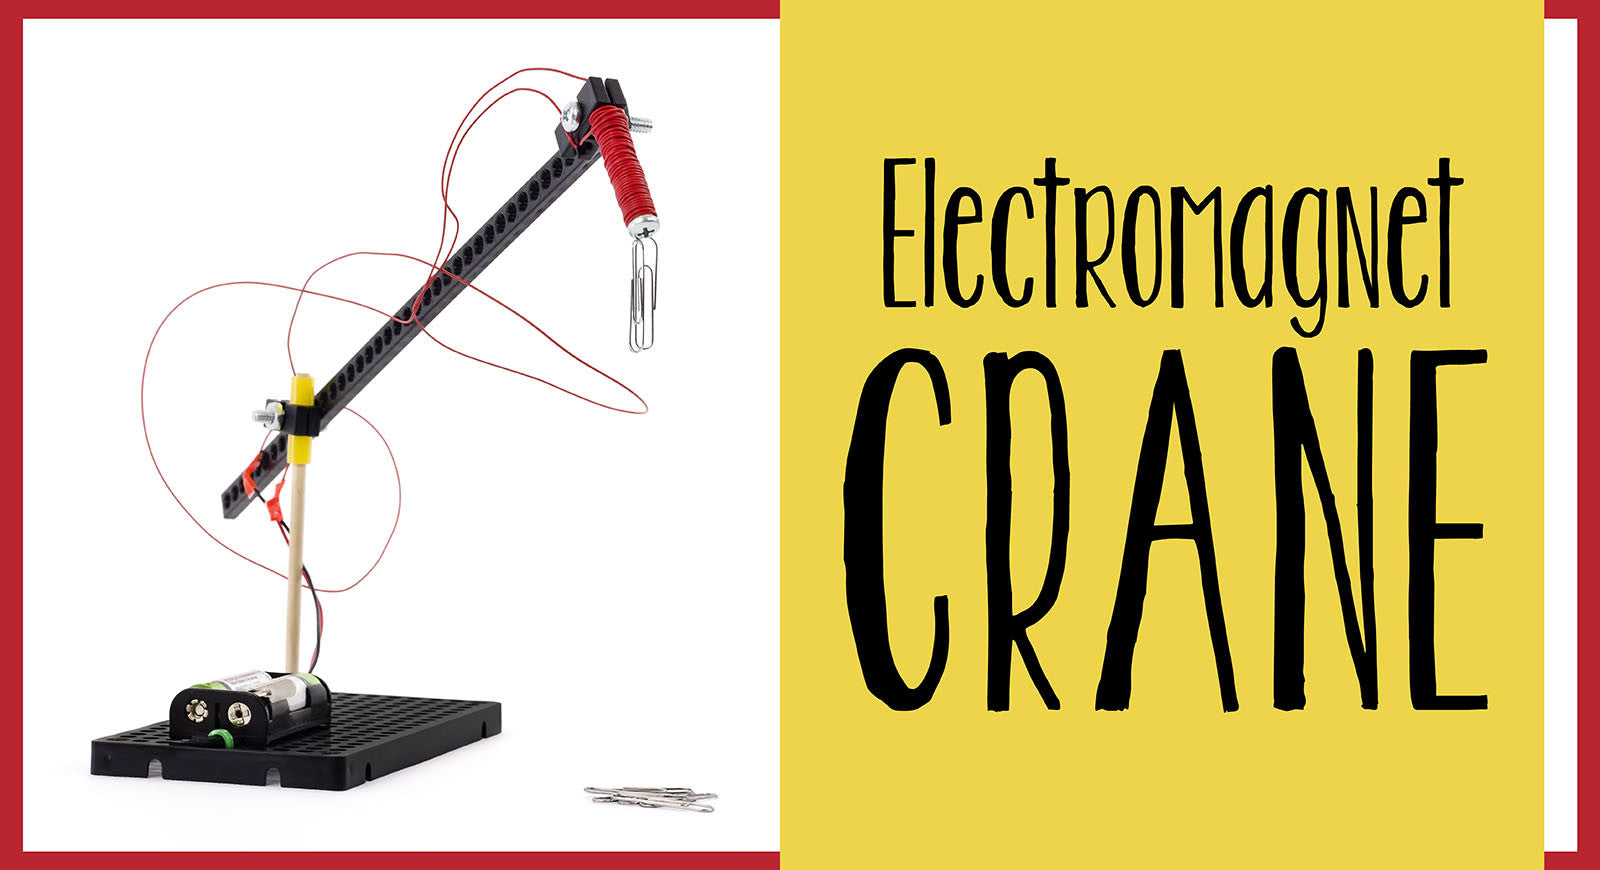 download documents electromagnet crane activity \u2013 teachergeek simple electromagnetic crane diagram grade 7 topic electricity ppt download